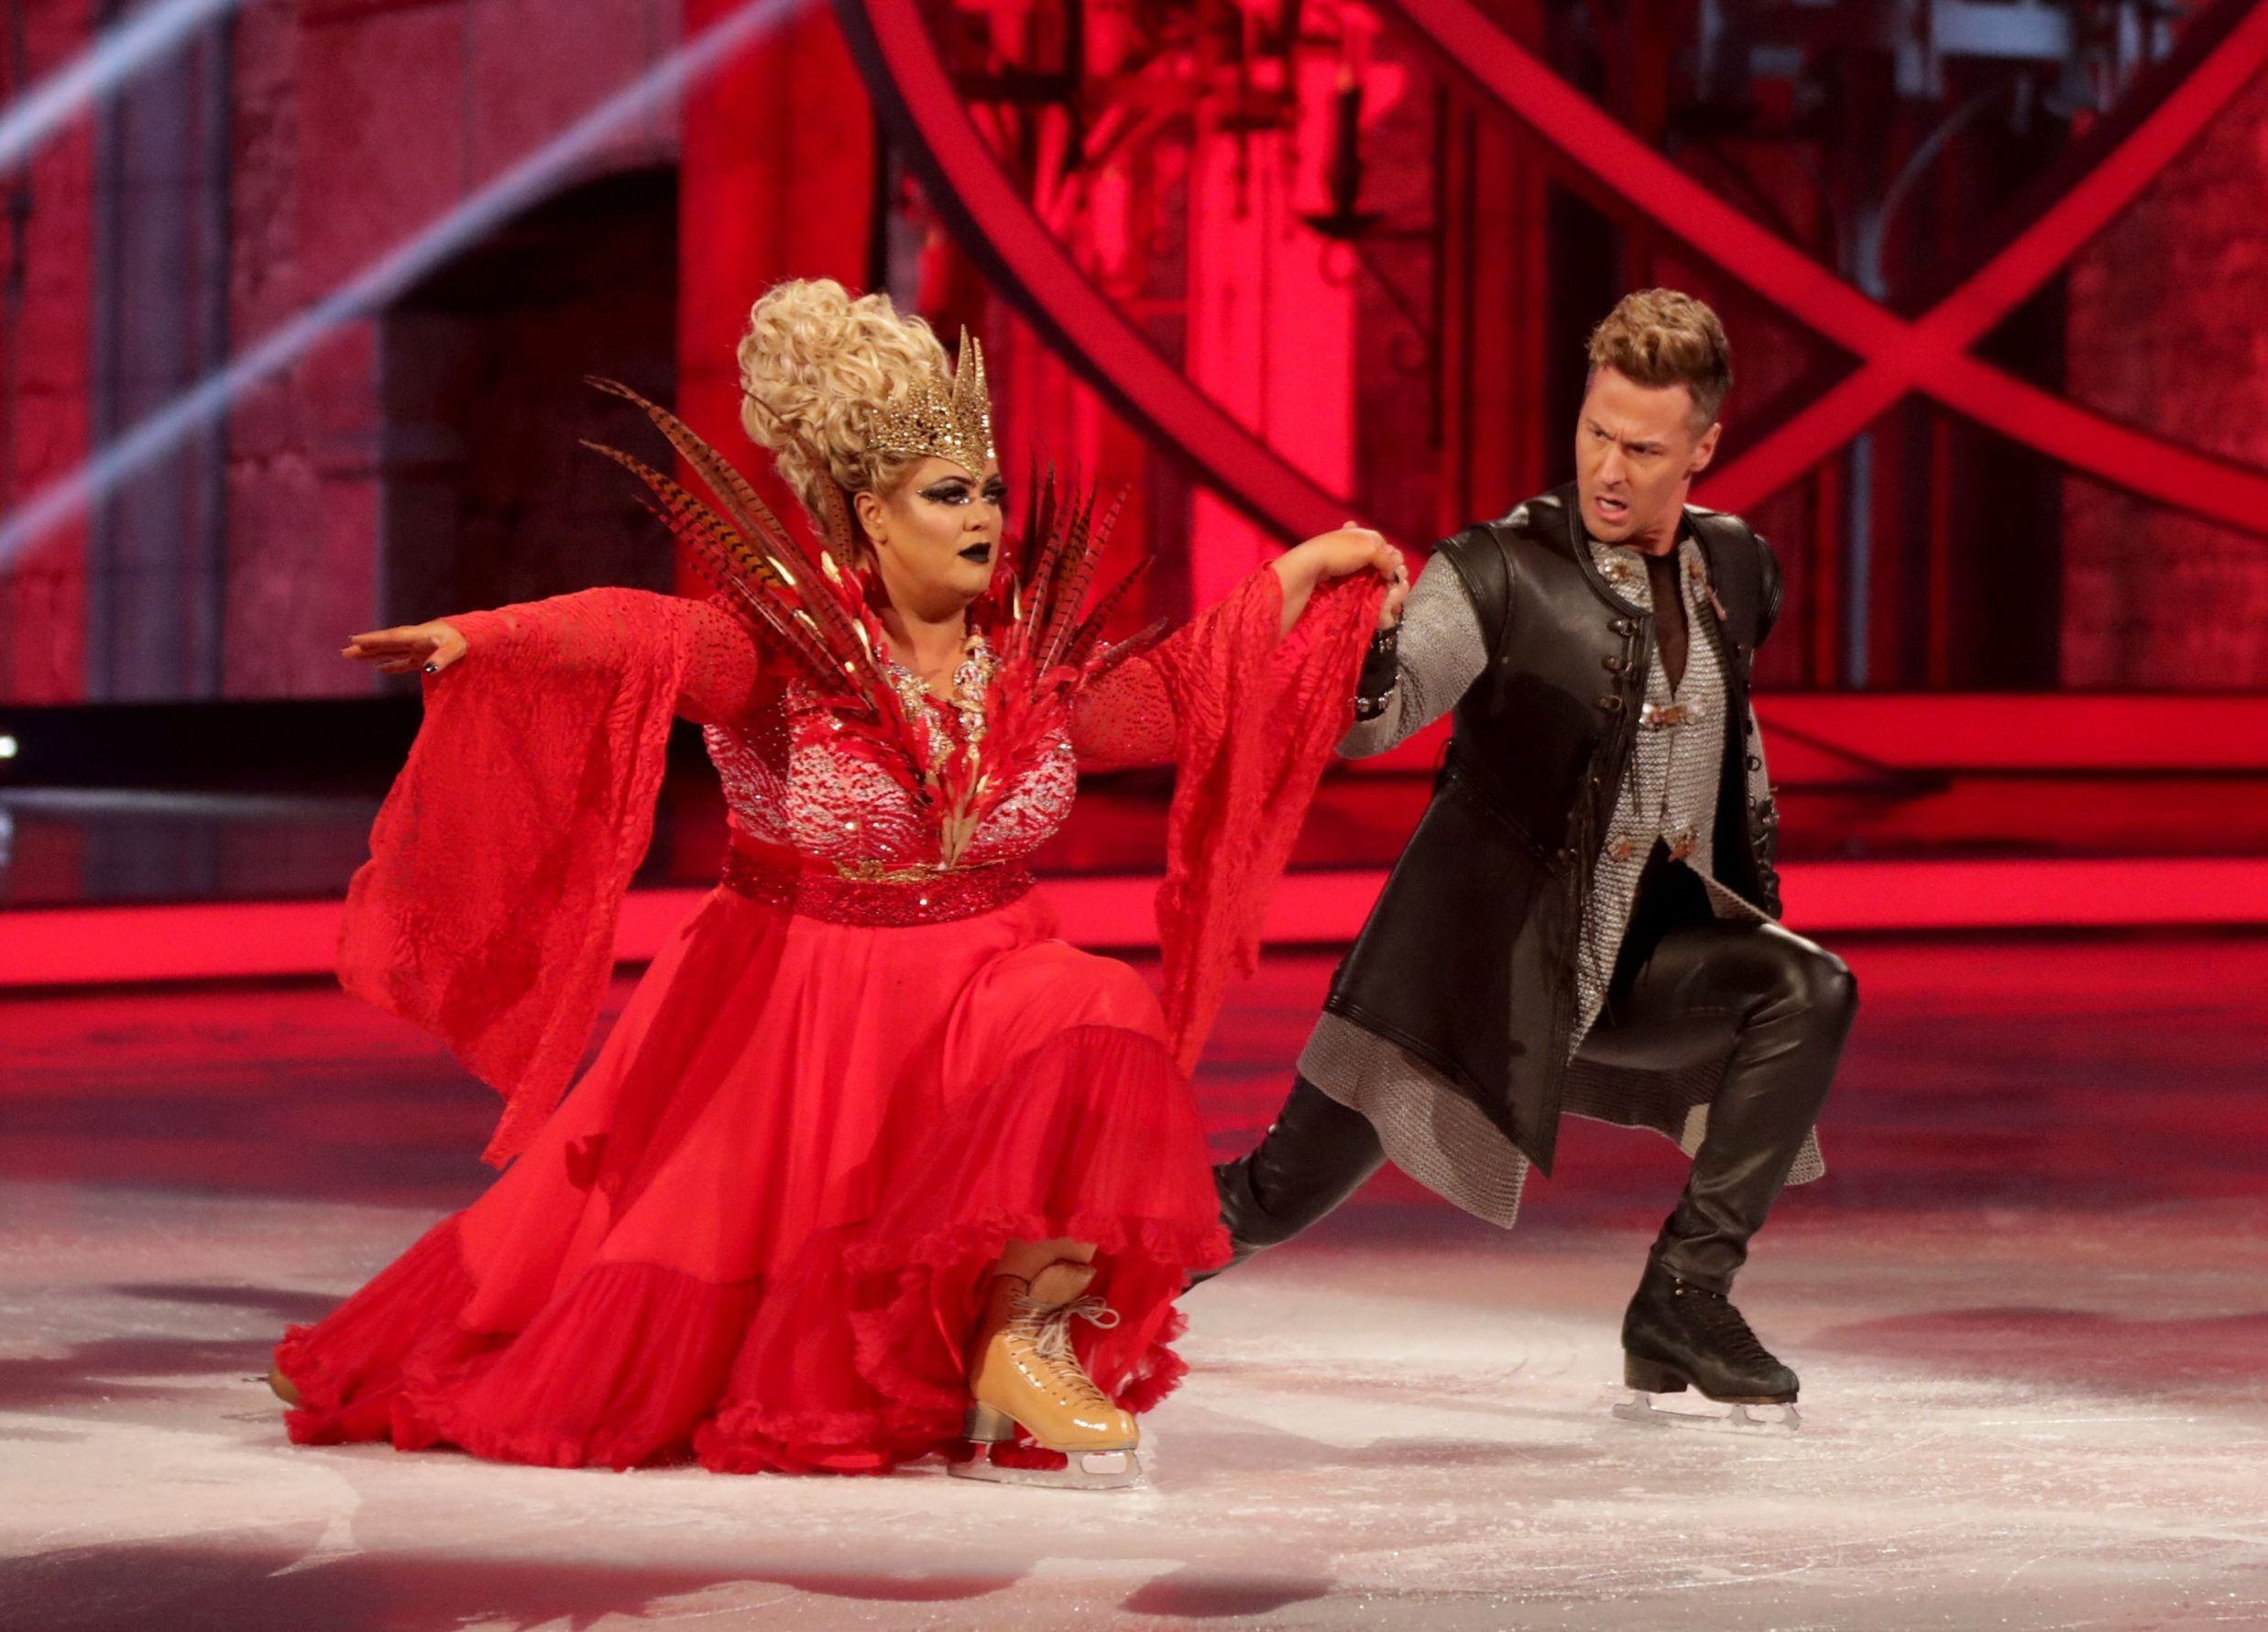 Editorial use only Mandatory Credit: Photo by Matt Frost/ITV/REX (10080492do) Gemma Collins and Matt Evers 'Dancing on Ice' TV show, Series 11, Episode 5, Hertfordshire, UK - 03 Feb 2019